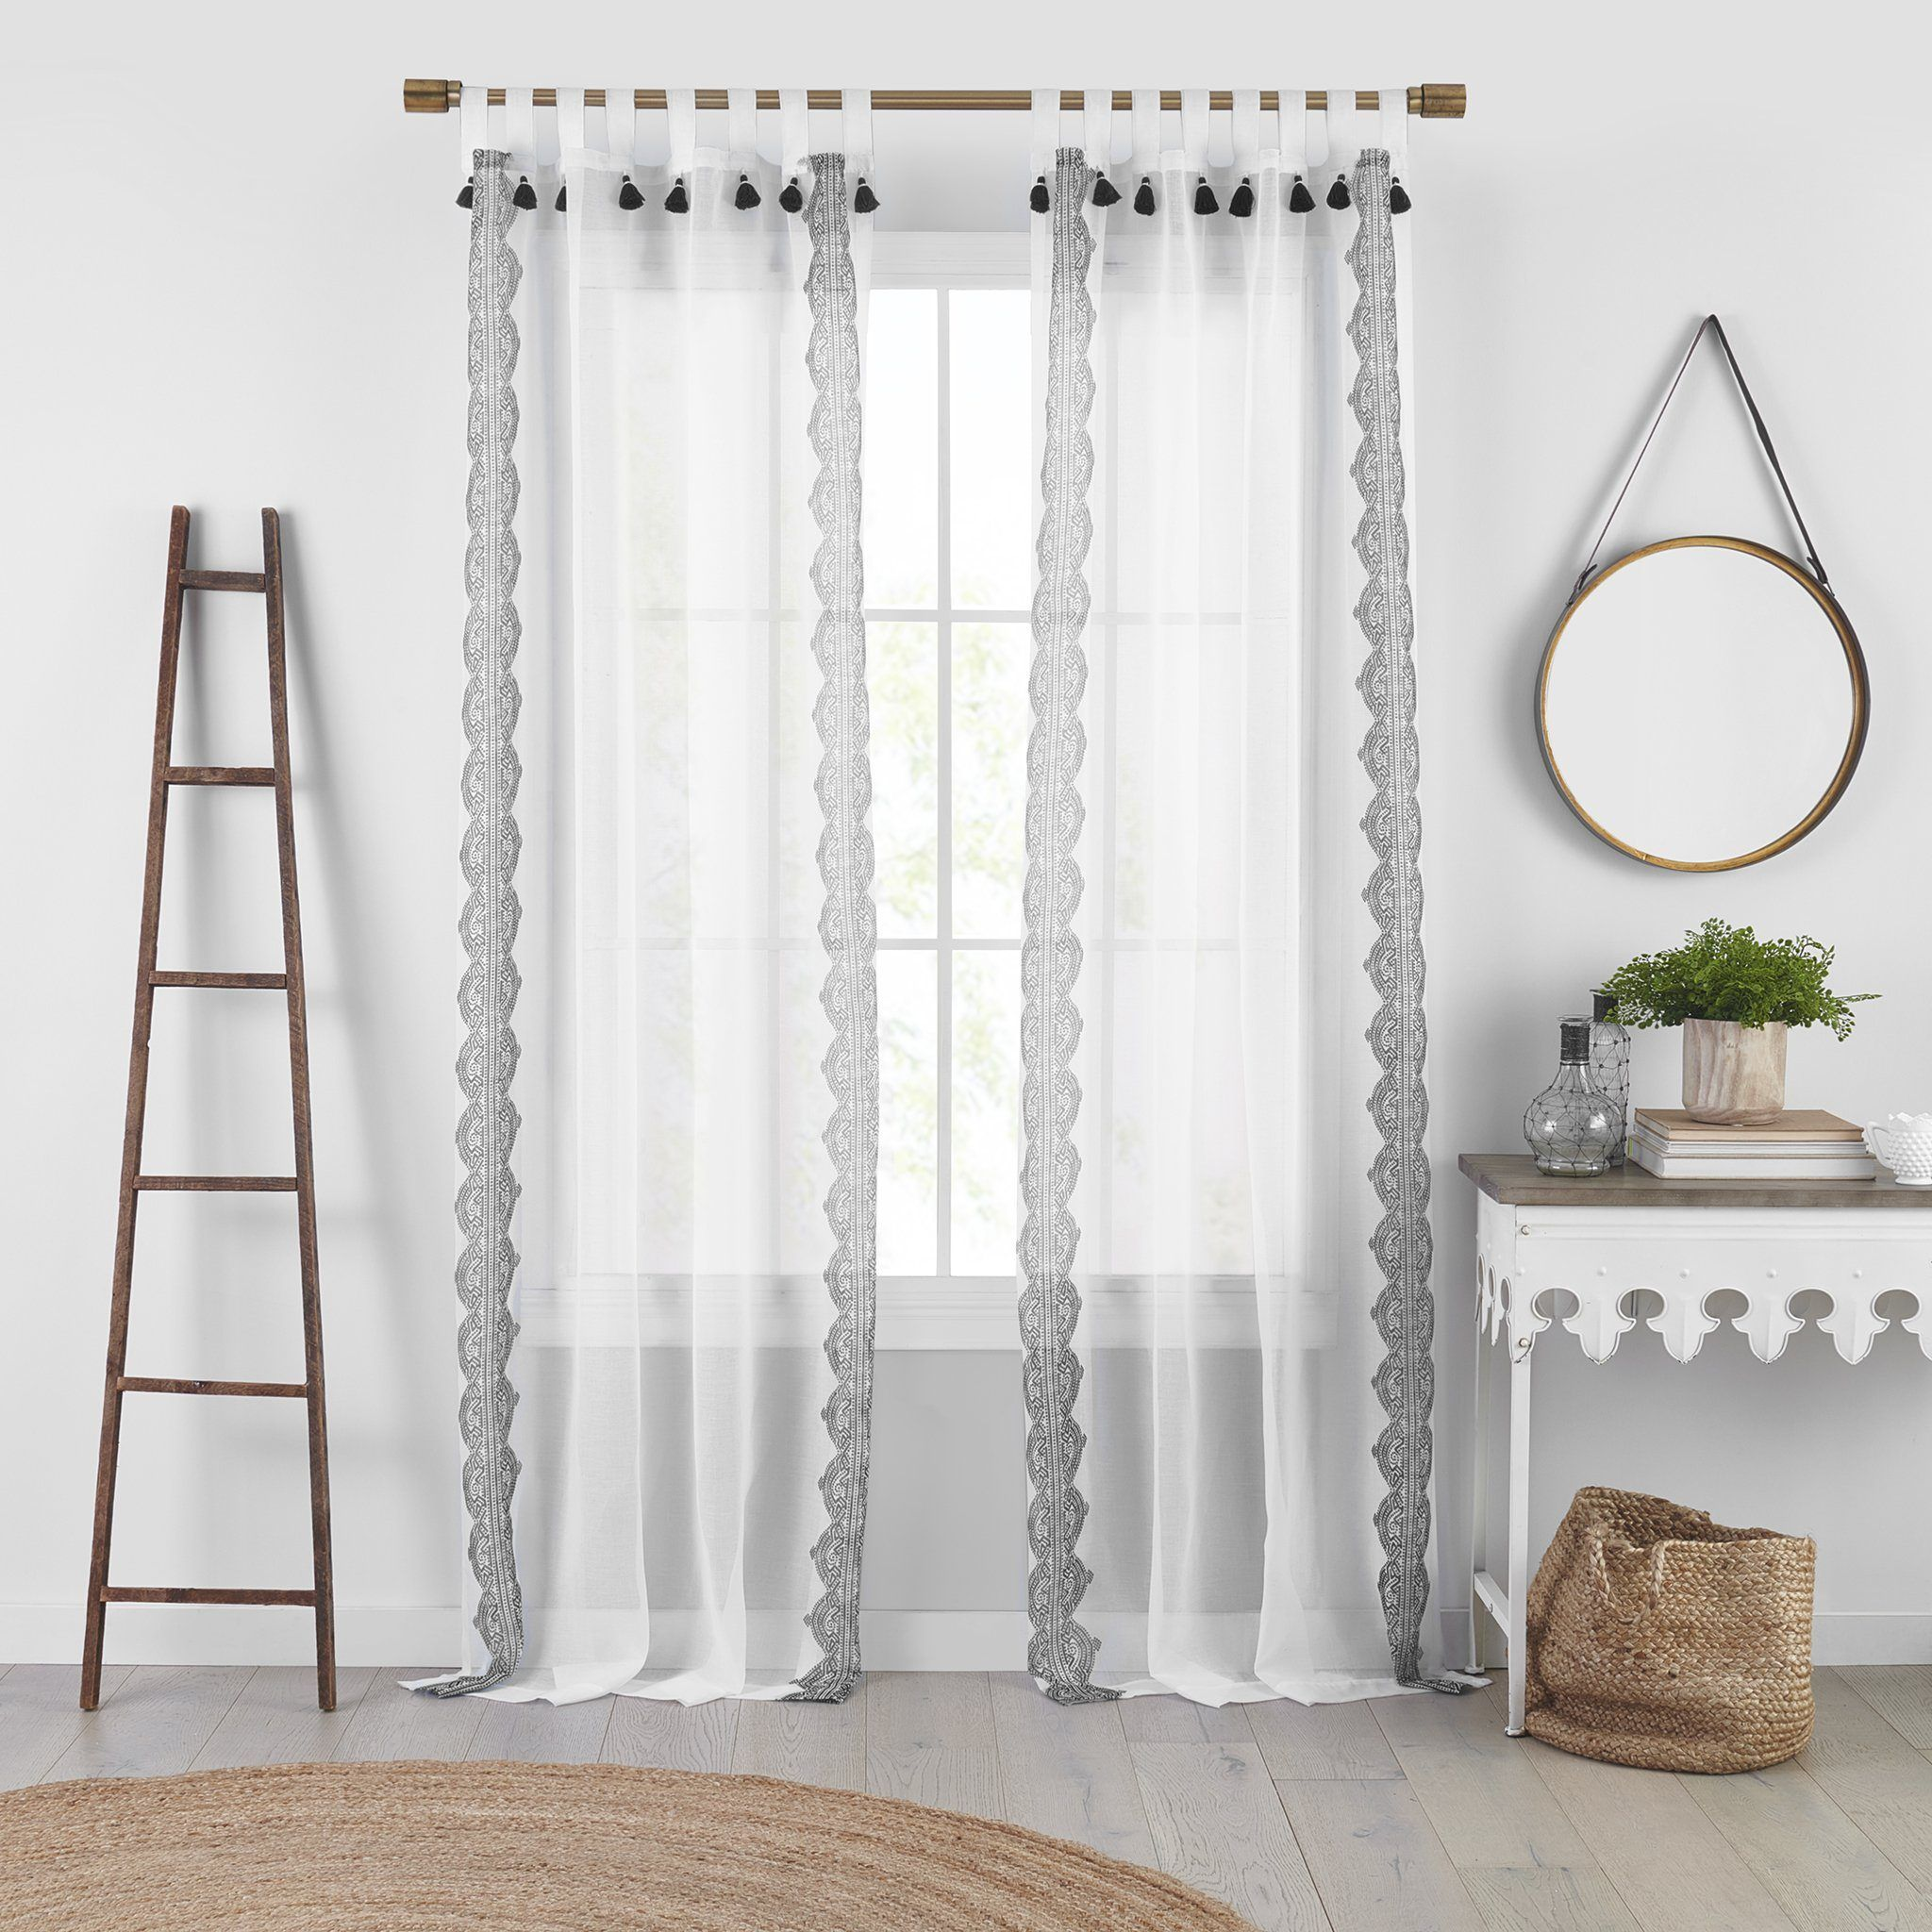 Shilo Boho Sheer Tab Top Window Curtain Panel With Tassels In 2021 Panel Curtains Elrene Home Fashions Sheer Curtains Bedroom White sheer tab top curtains